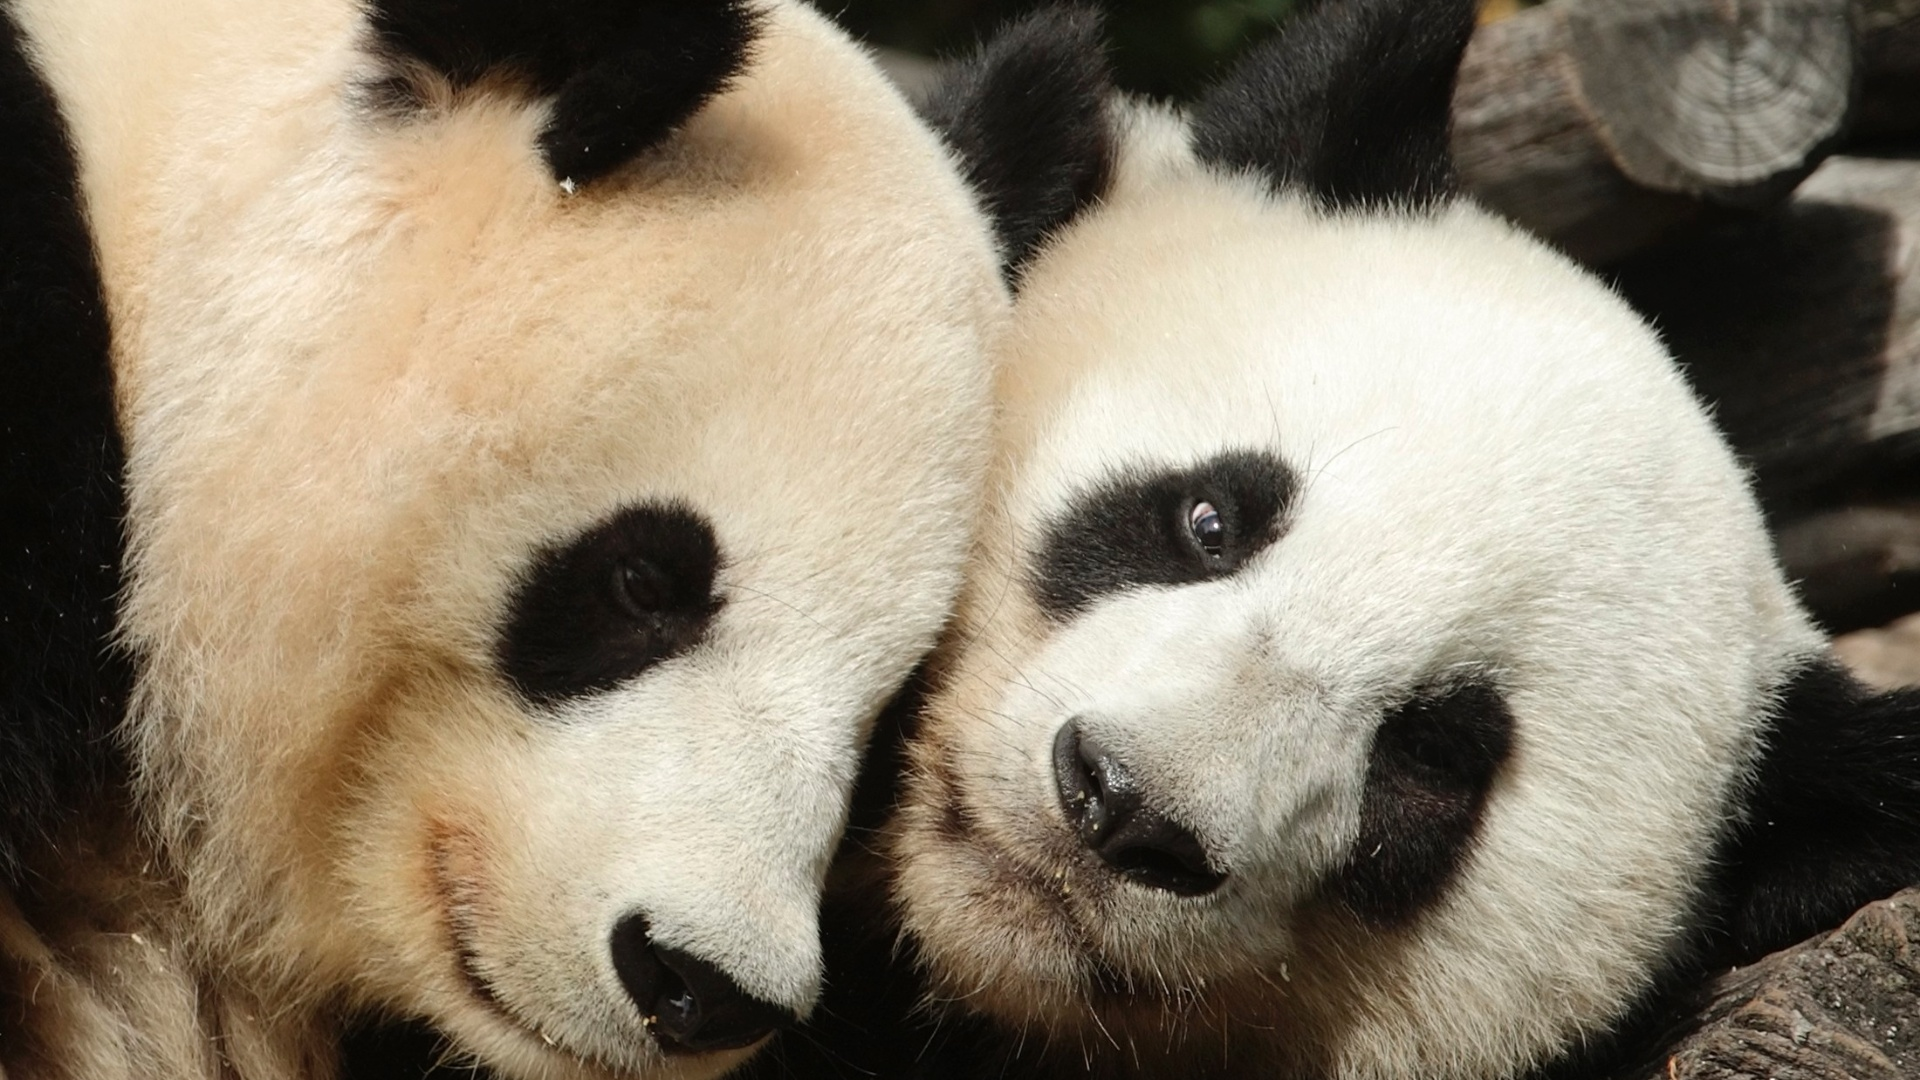 O panda Yang Yang e seu filhote Fu Hu, que completa dois anos nesta quinta-feira (23), no zoolgico de Vienna, na ustria